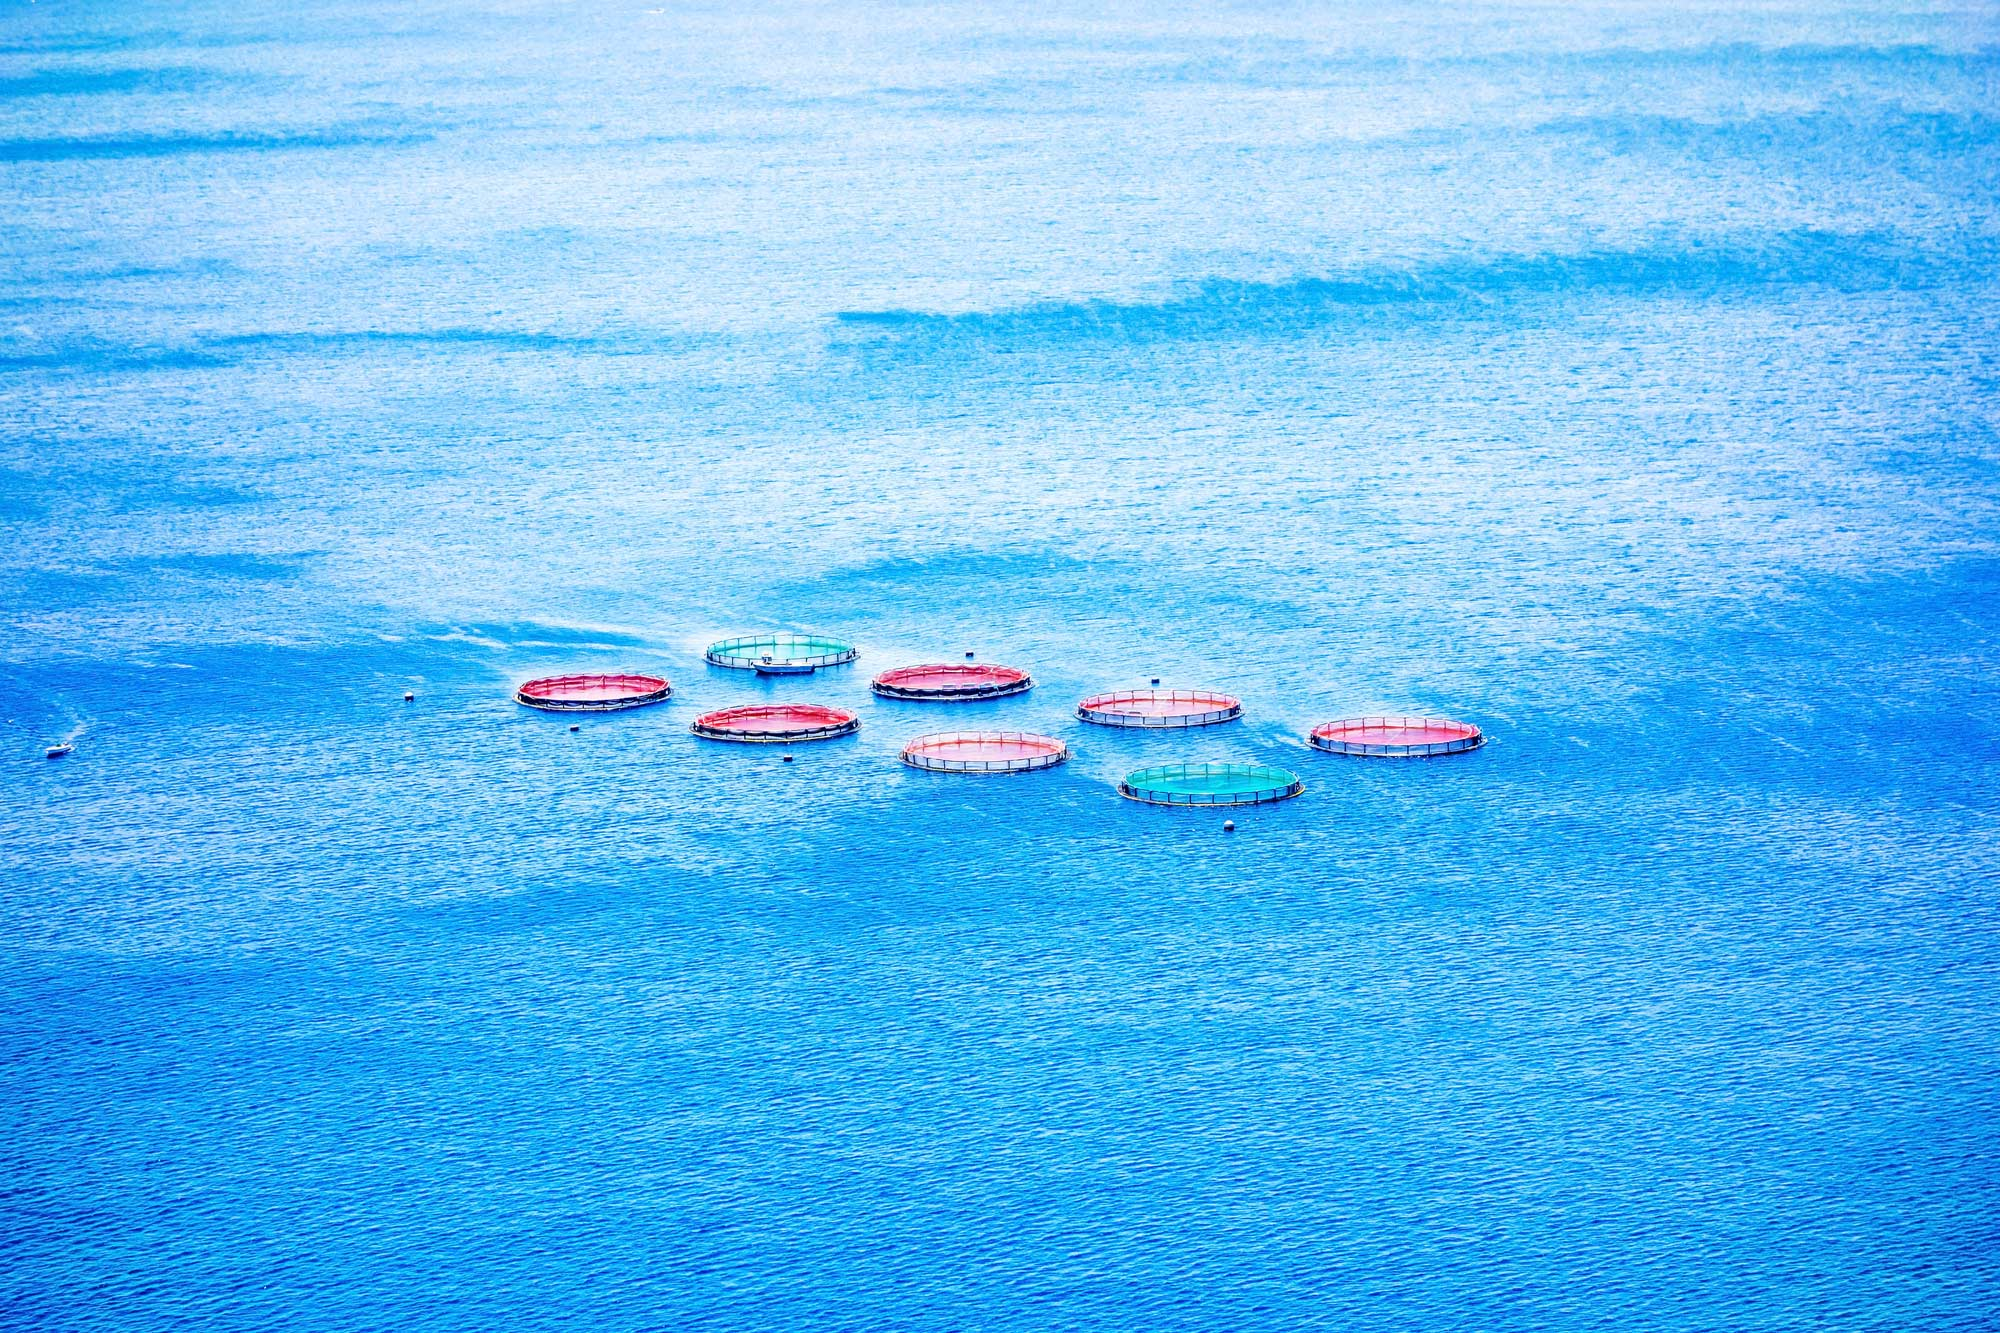 HDPE cages in open water